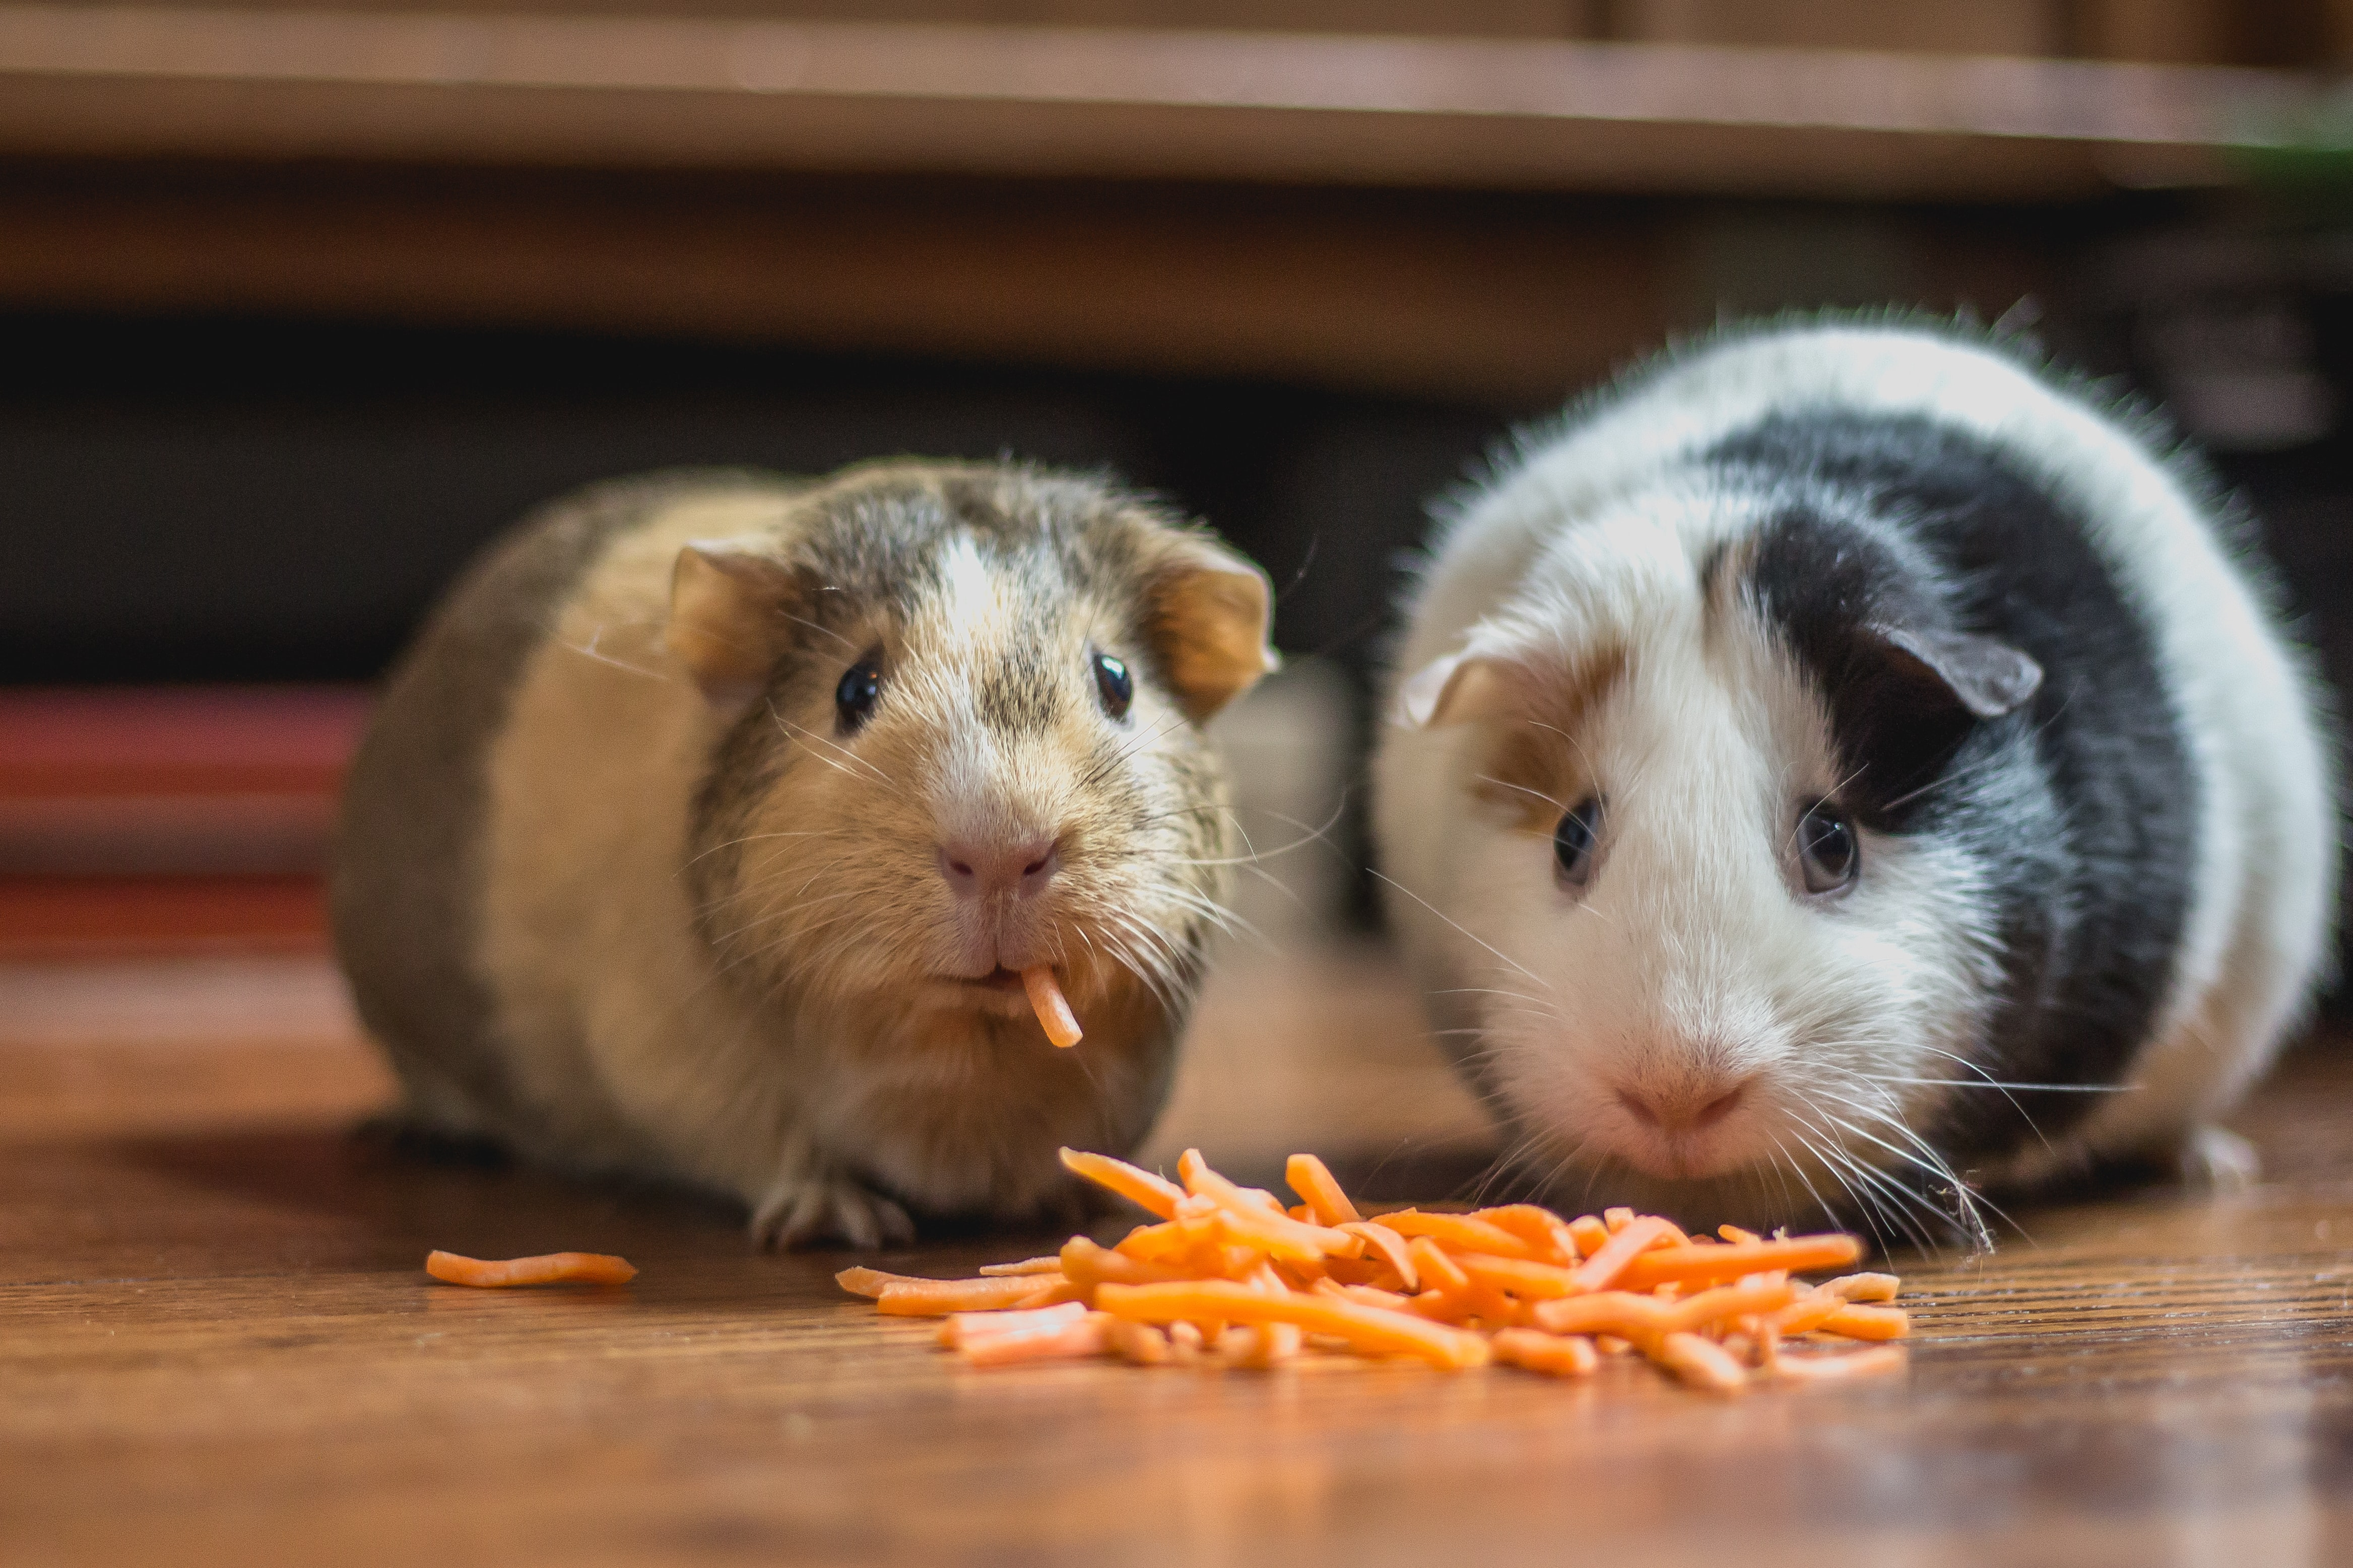 Rosie and Miko  We are Rosie and Miko the Guinea pigs we love people will you adopt us we were so cute make us cute again please. stories